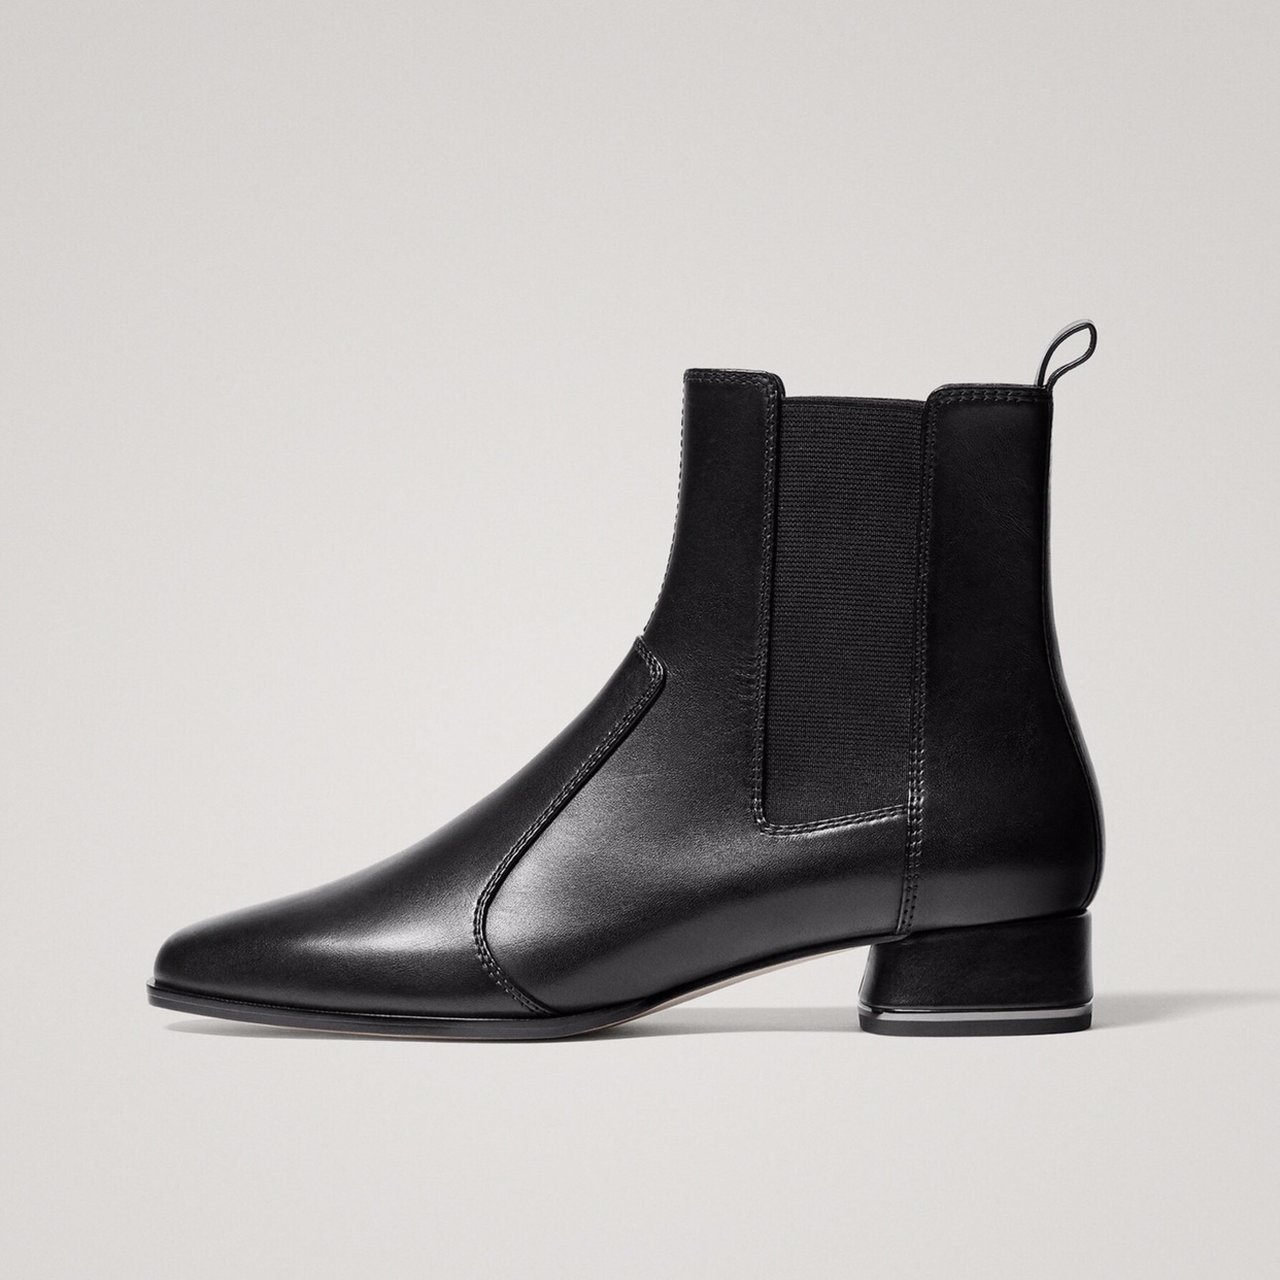 031ed568e5 Brand New With Tags Still Attached Massimo Dutti Black Sheep Leather  Stretch Ankle Boots With Dark